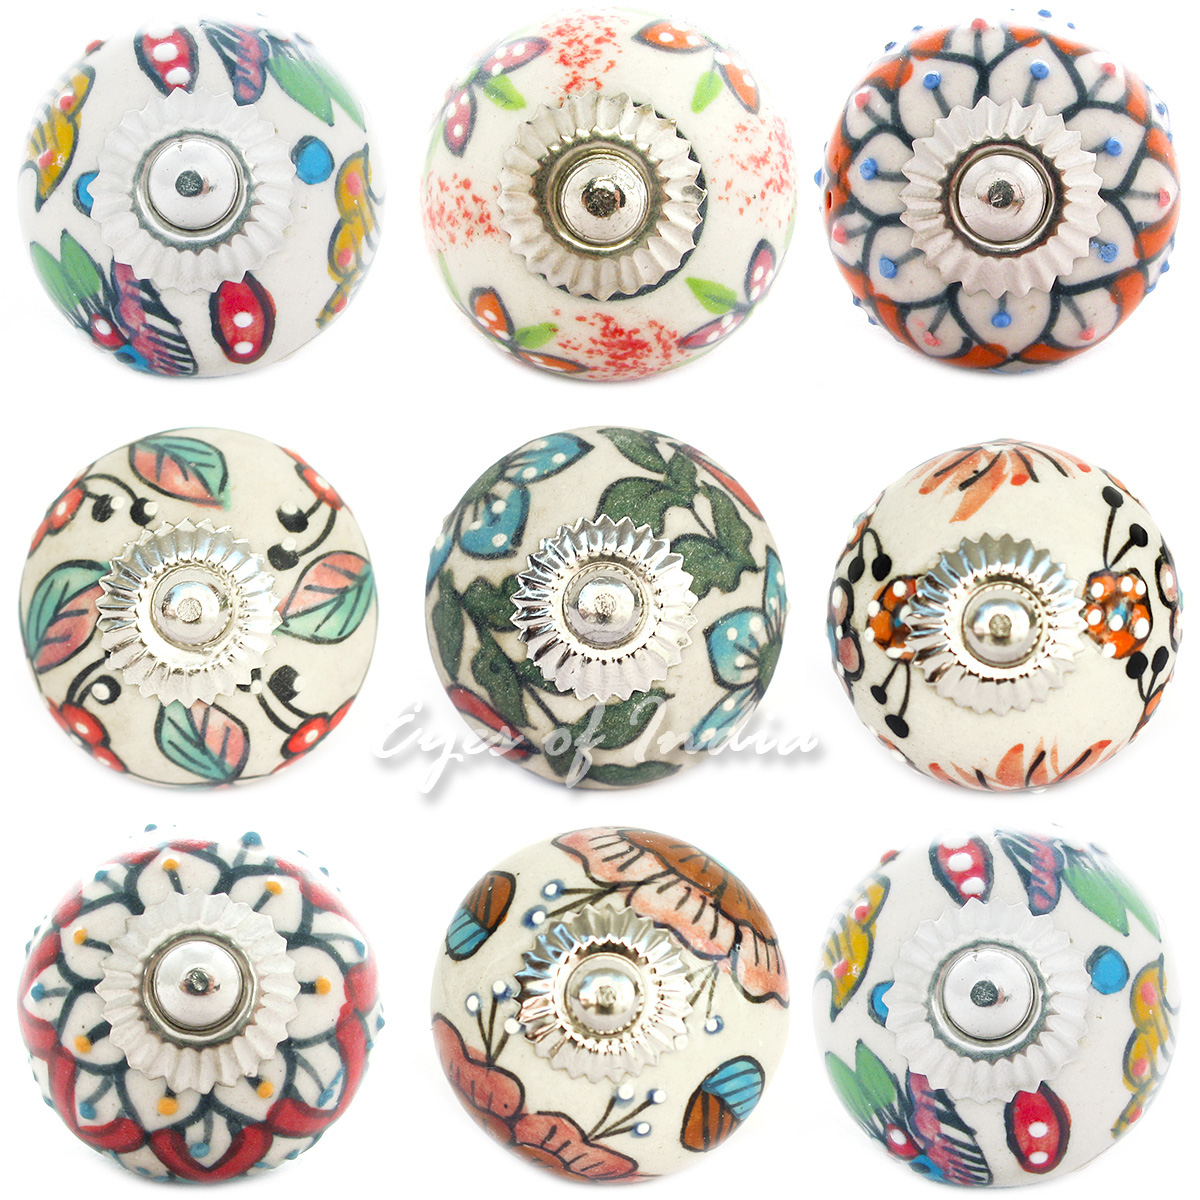 Merveilleux Sentinel Ceramic Cabinet Dresser Door Cupboard Knobs Pulls Decorative  Shabby Chic Colorfu